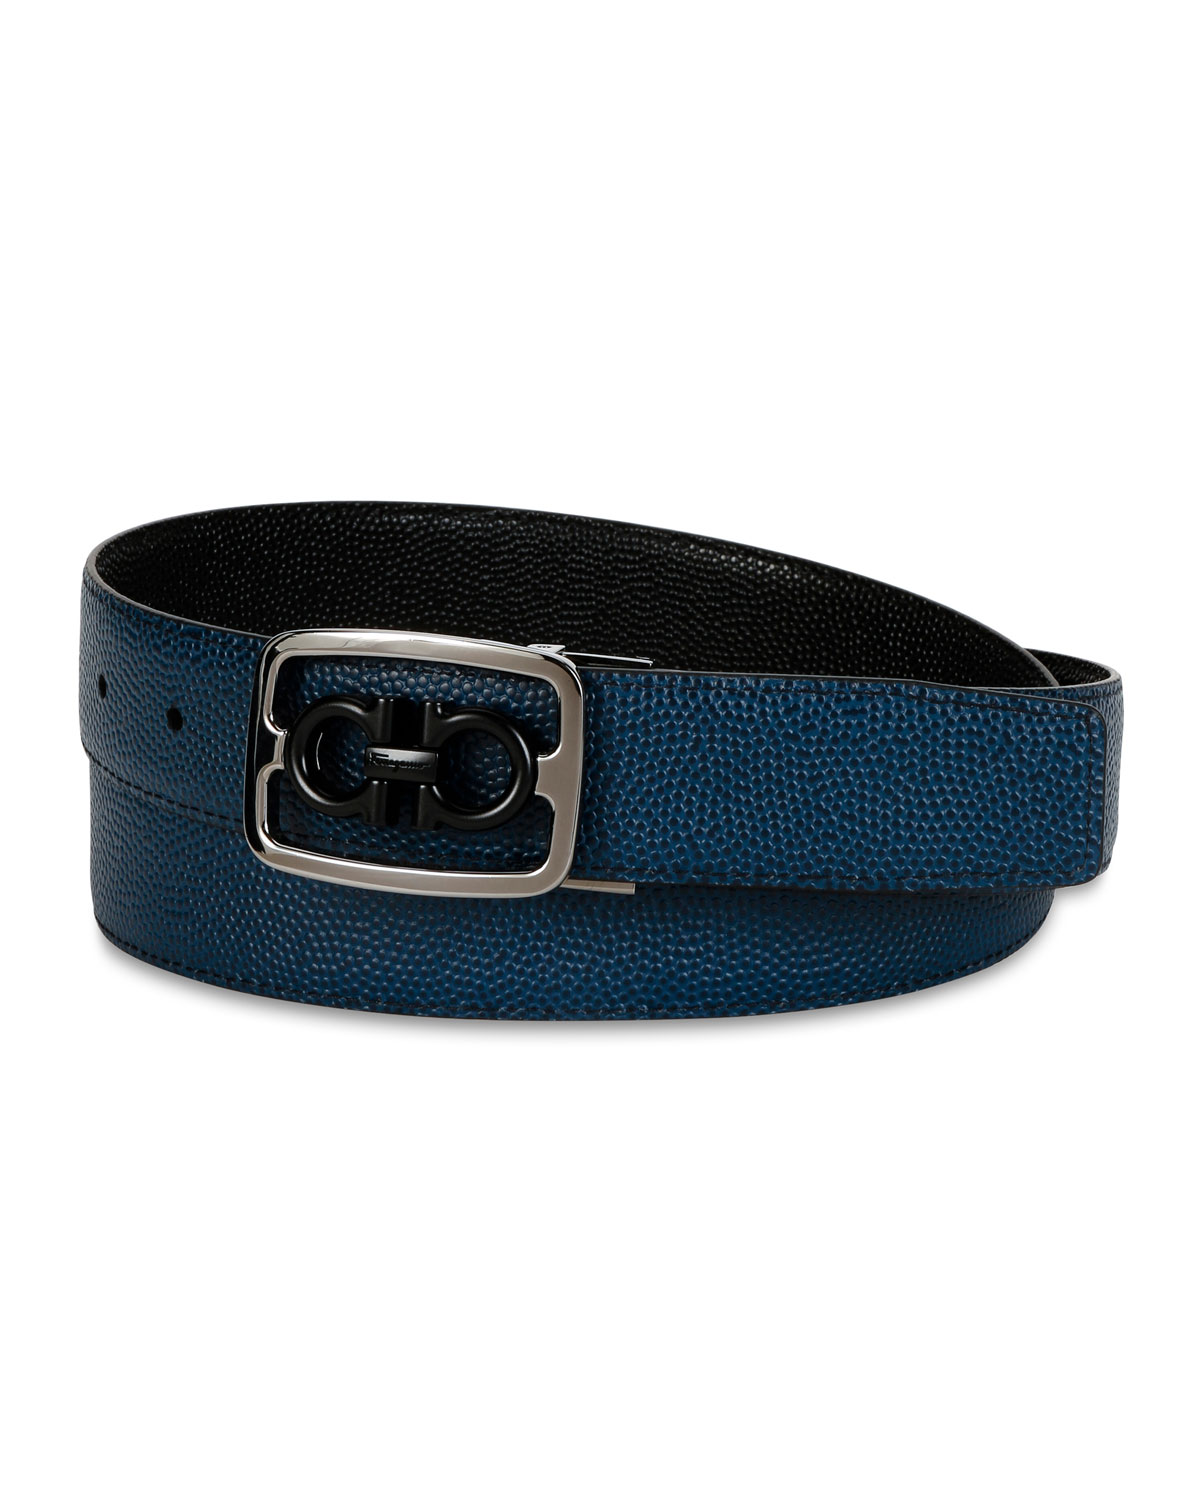 Salvatore Ferragamo Belt Men's Reversible Gancini Buckle Leather Belt